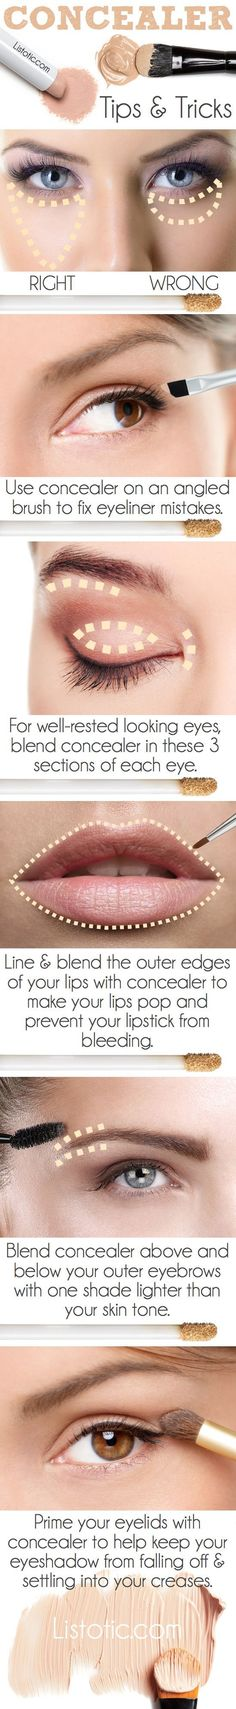 So many things you can do with concealer!